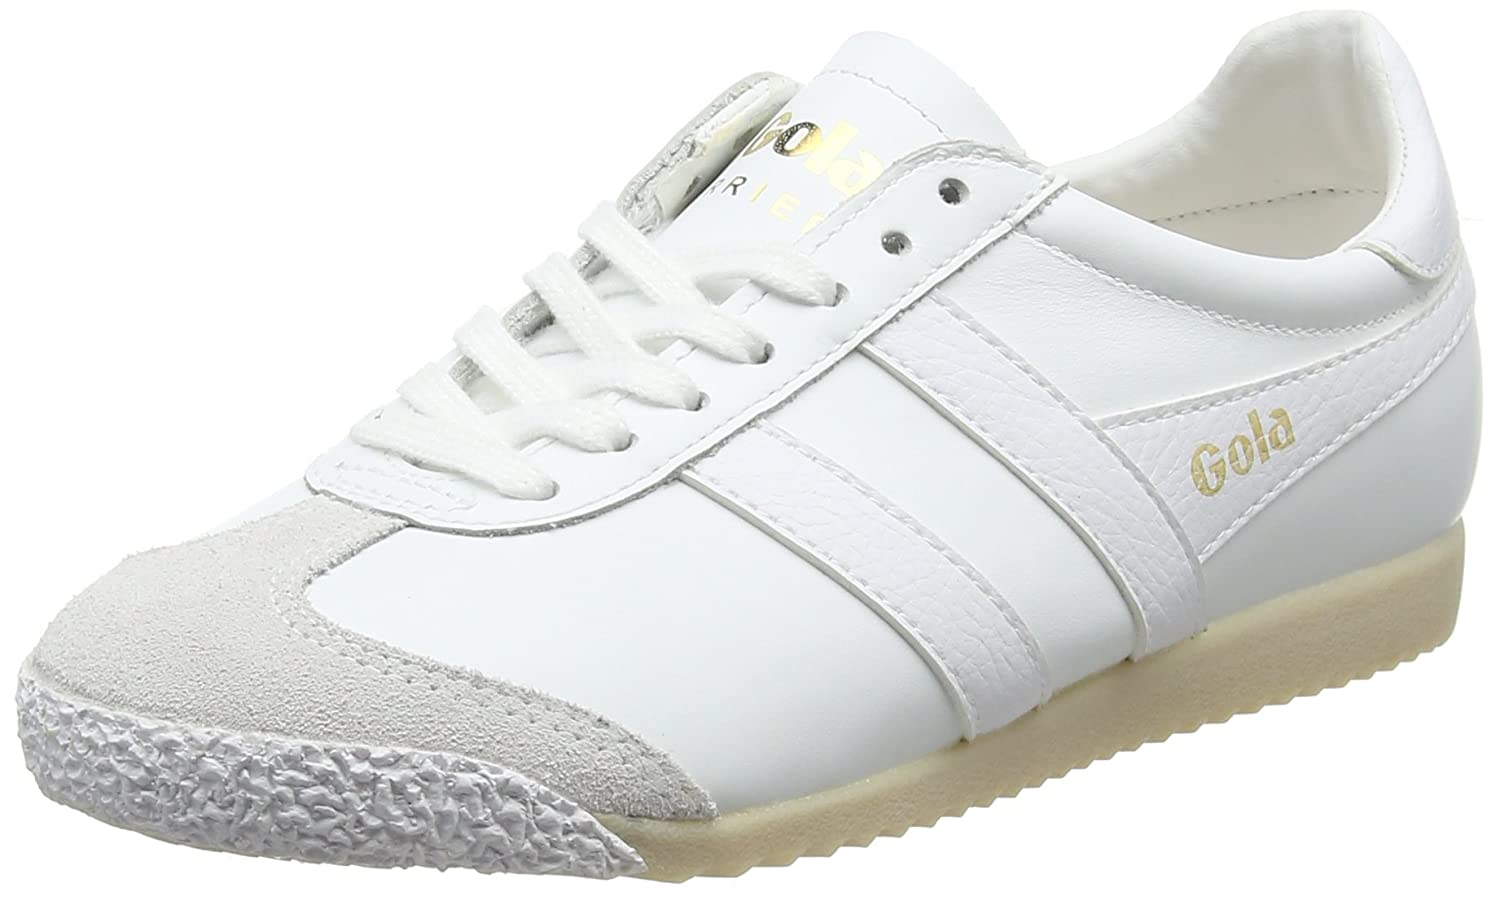 TALLA 40 EU. Gola Harrier 50 Leather White, Zapatillas para Mujer